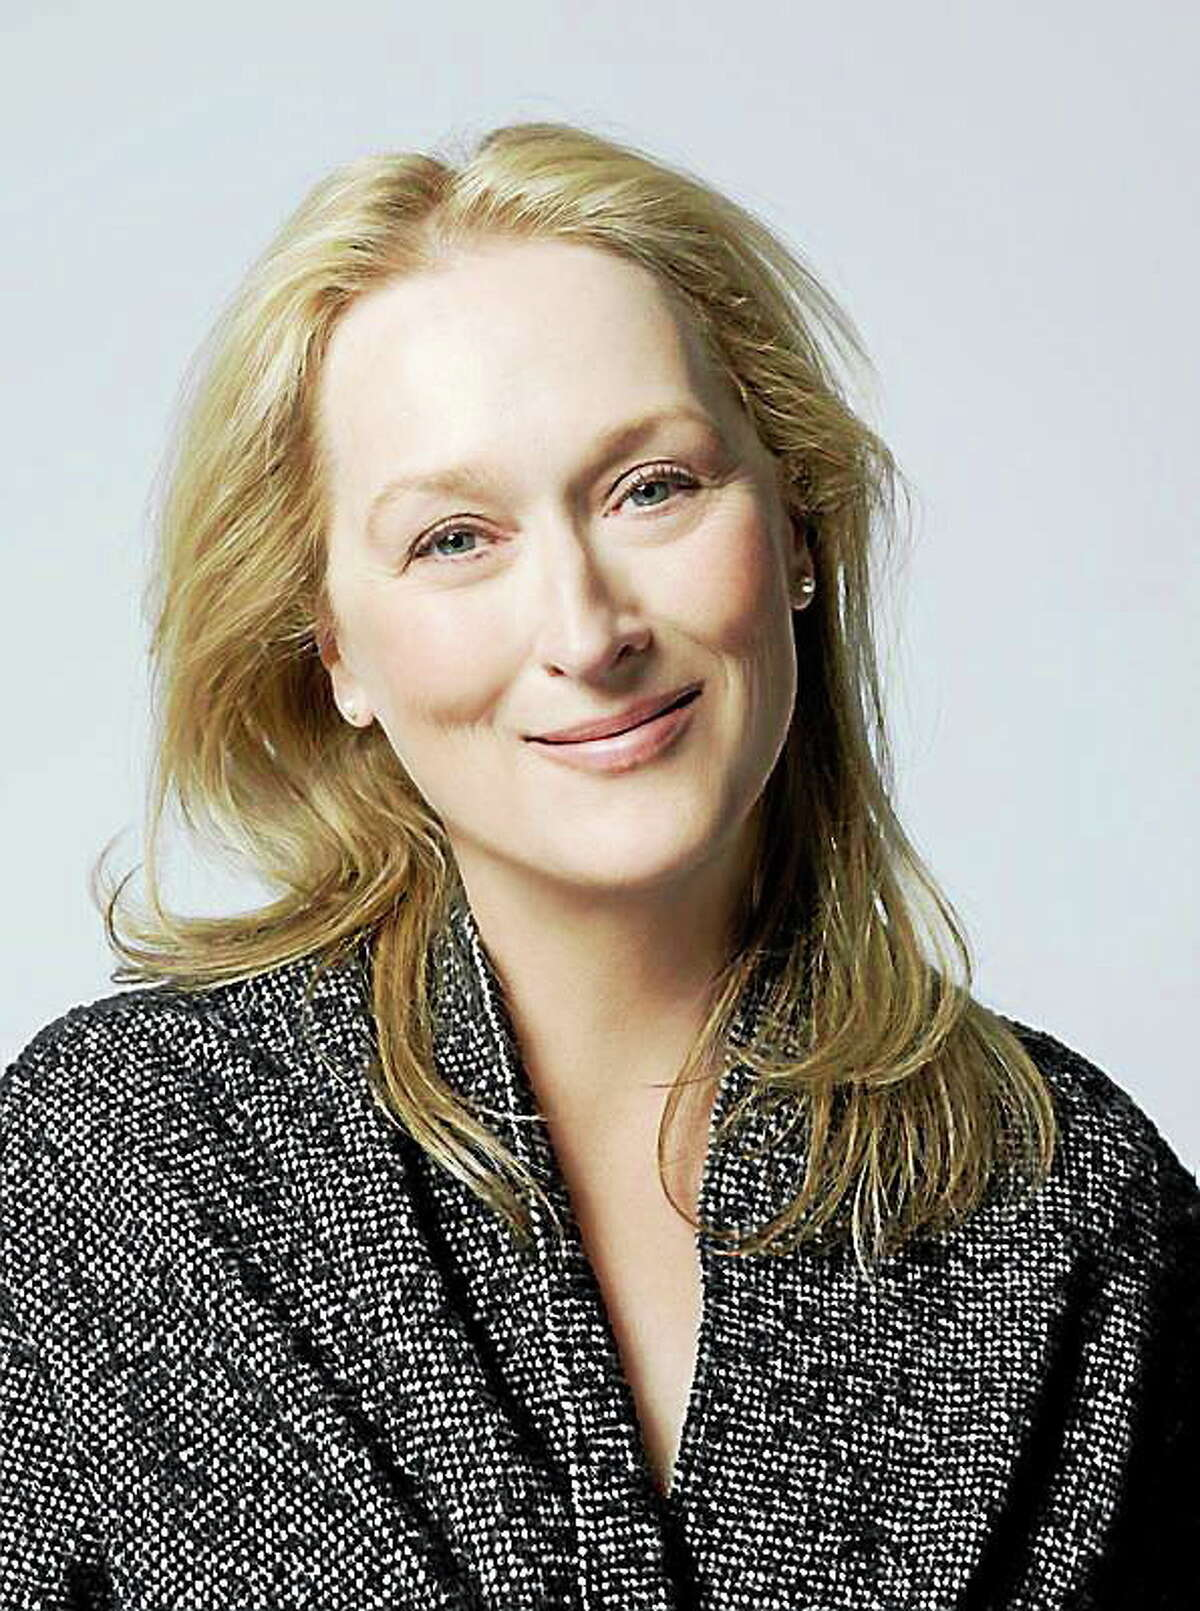 Actress Meryl Streep told contactmusic.com that she has experienced haunted happenings in the guest house on her Litchfield County property.